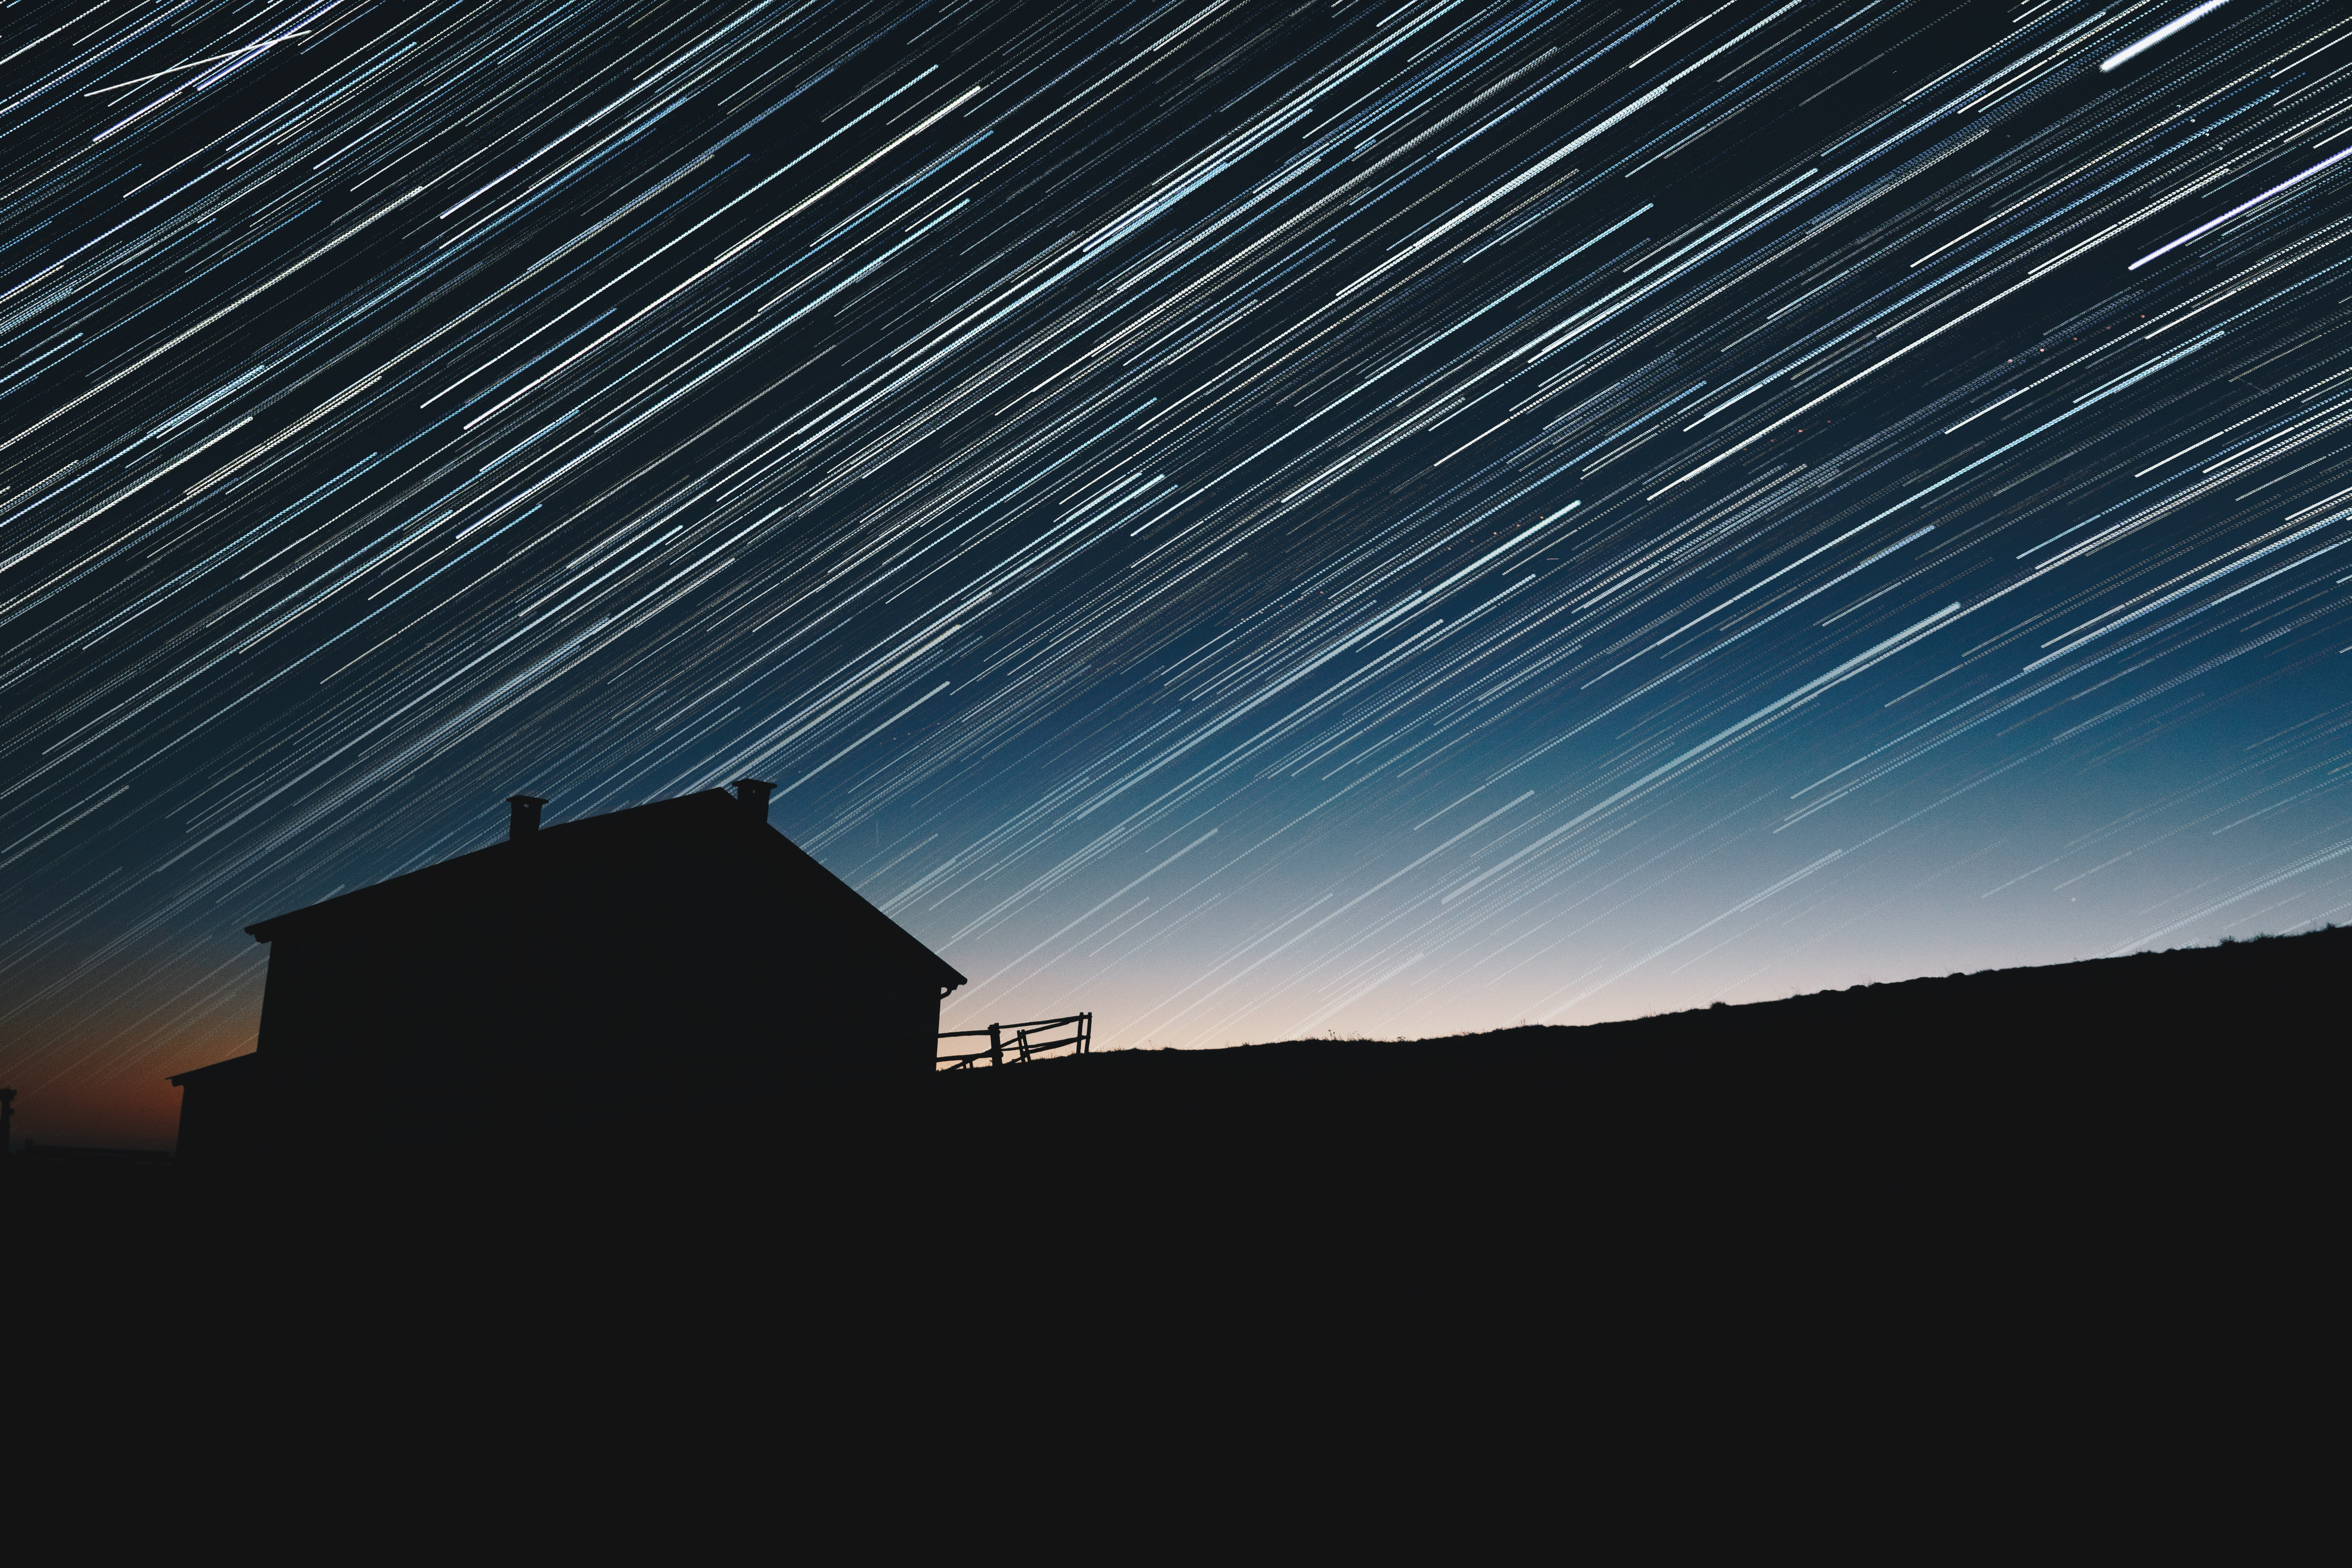 Long exposure photograph of the star trails above the silhouette of a house.